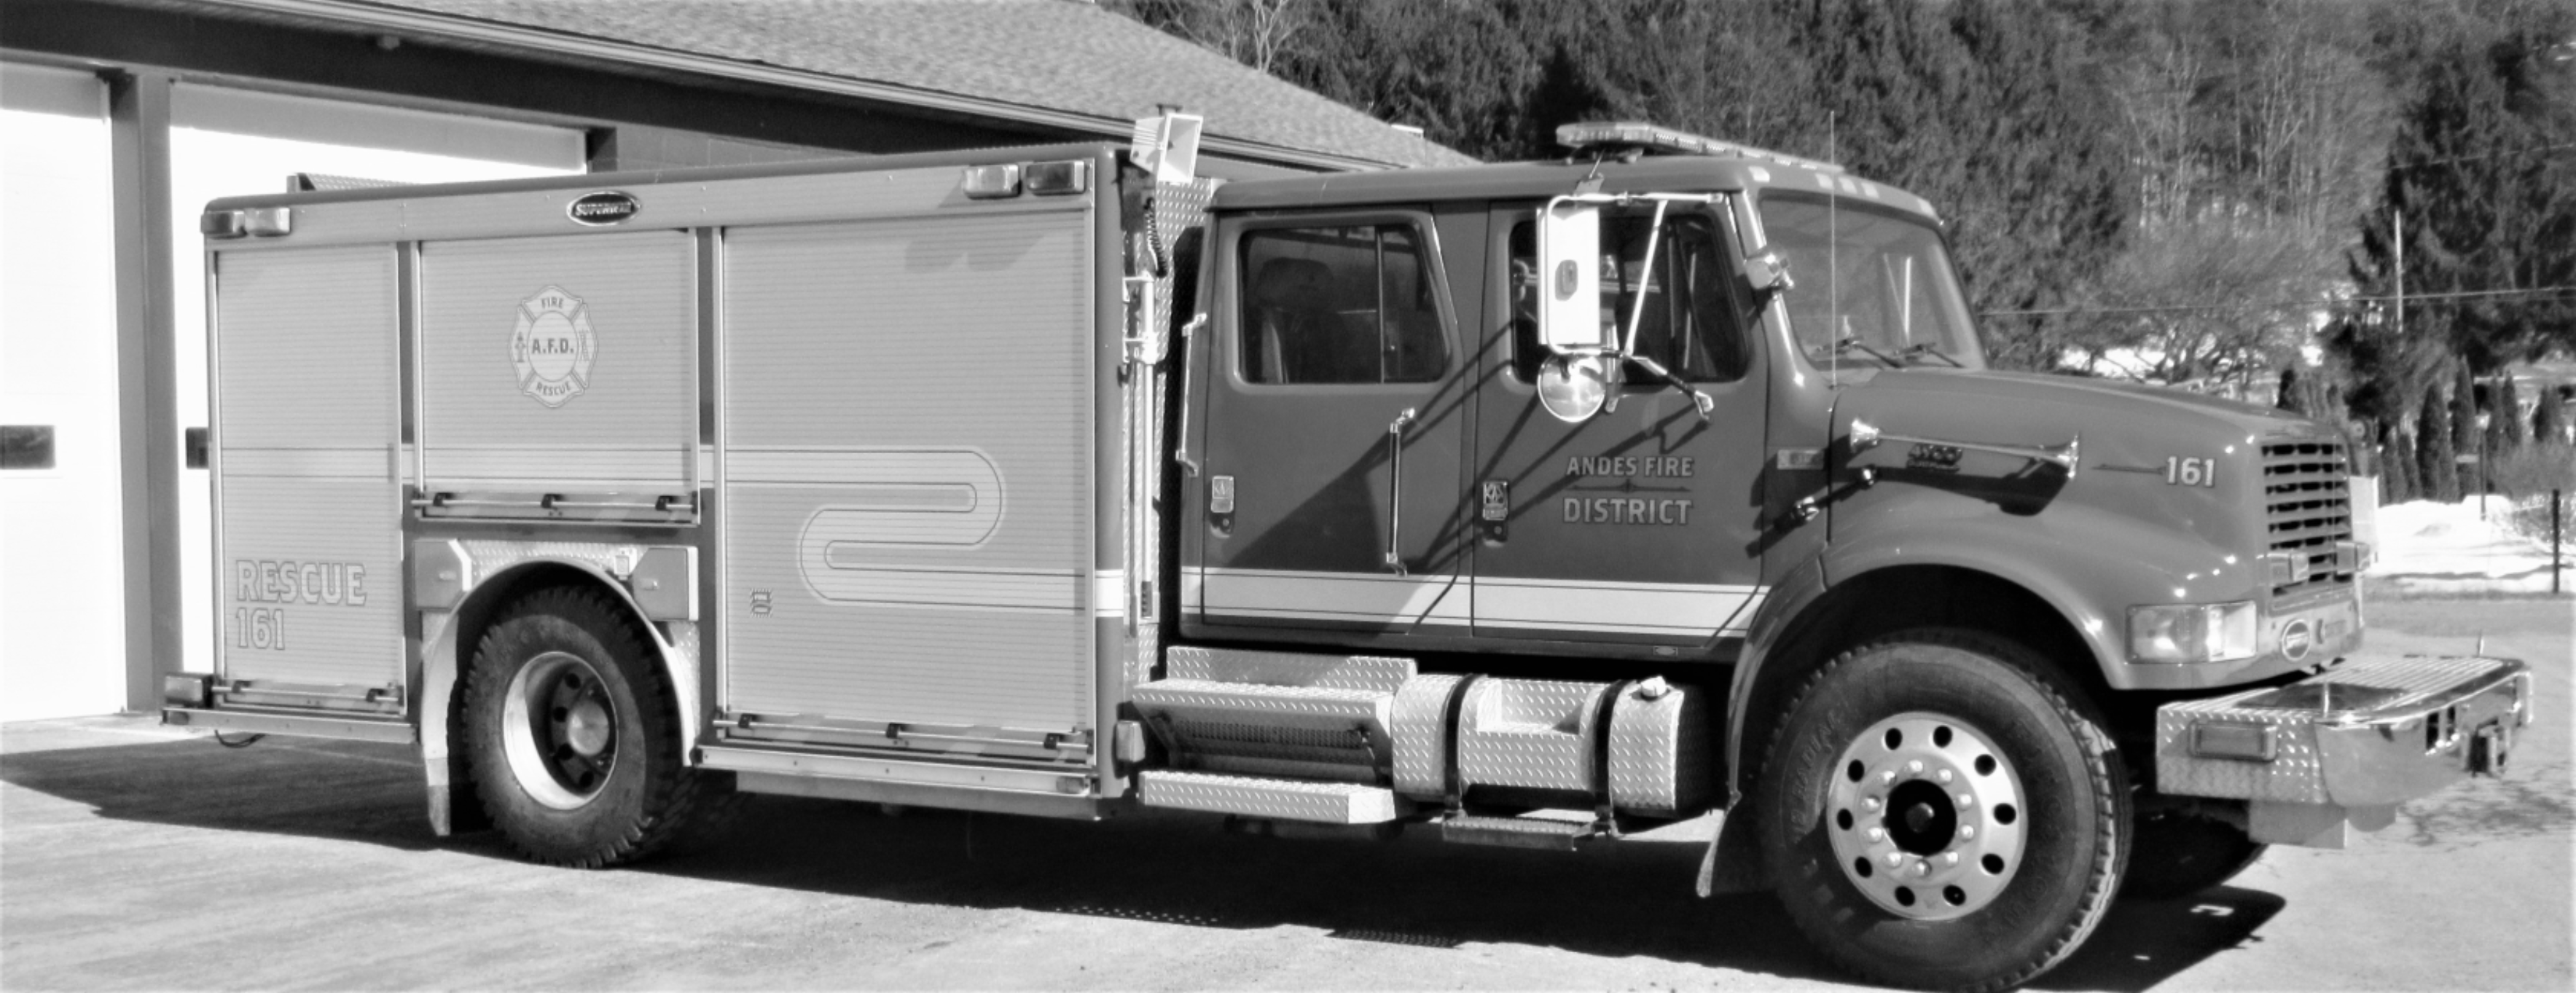 NEW (USED) RESCUE TRUCK ADDED TO FIRE DEPARTMENT FLEET — April 2021